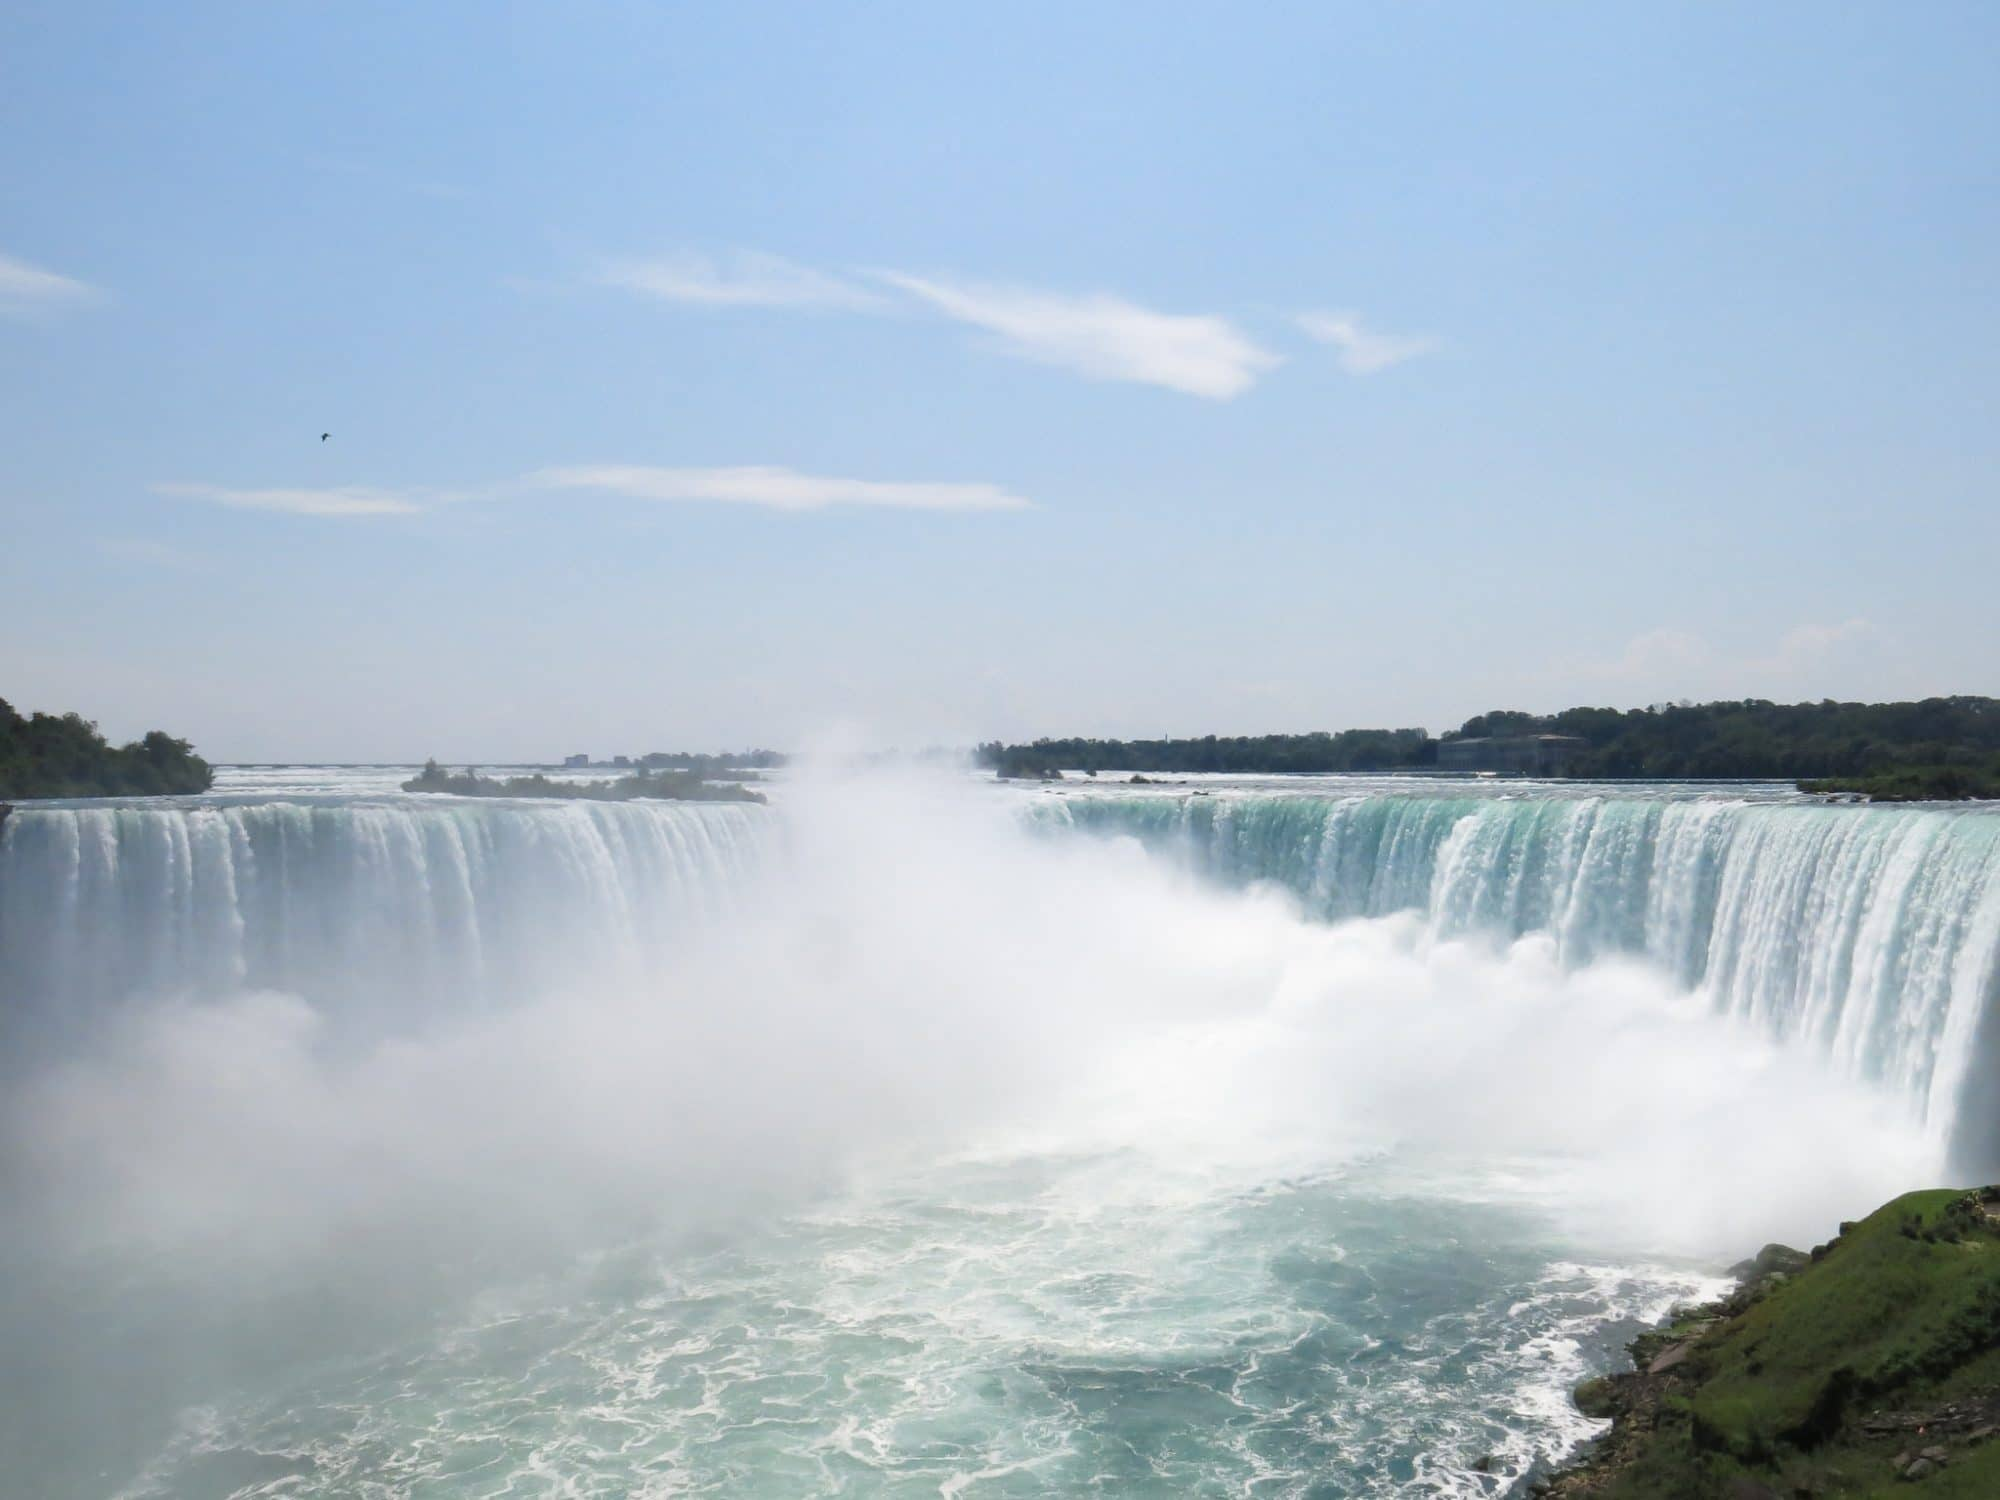 How The Horseshoe Falls Got Its Name